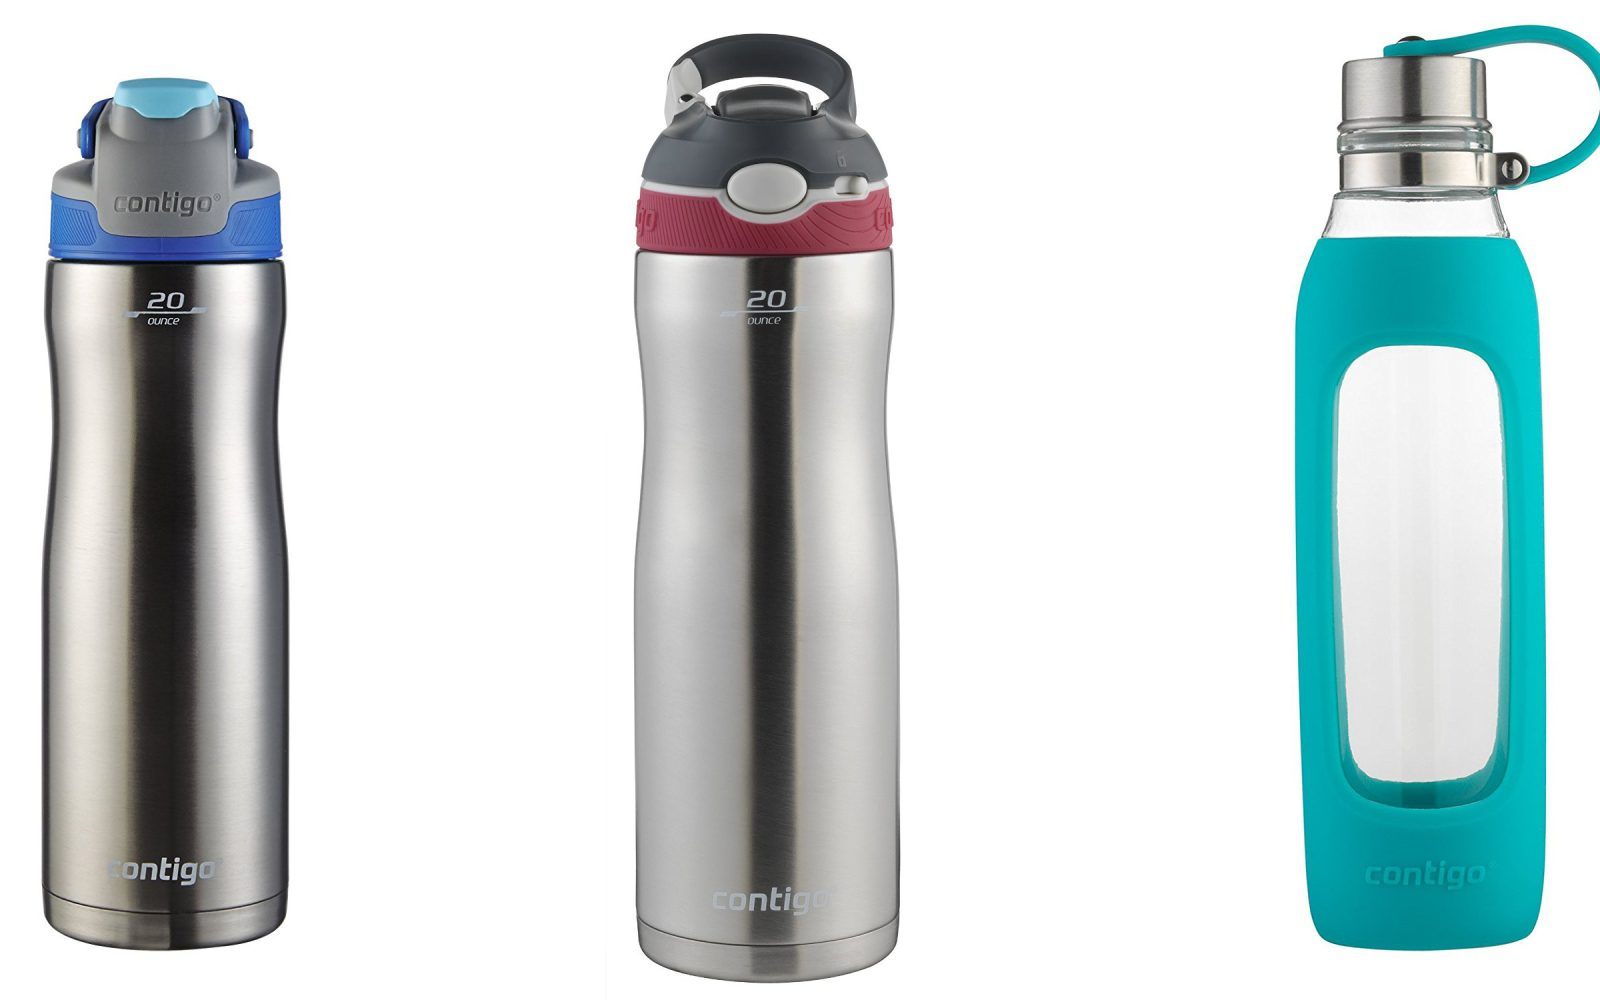 ab5beb3f78 Grab a brand new Contigo water bottle from just $12 Prime shipped: Ashland Chill  Stainless Steel $15, more